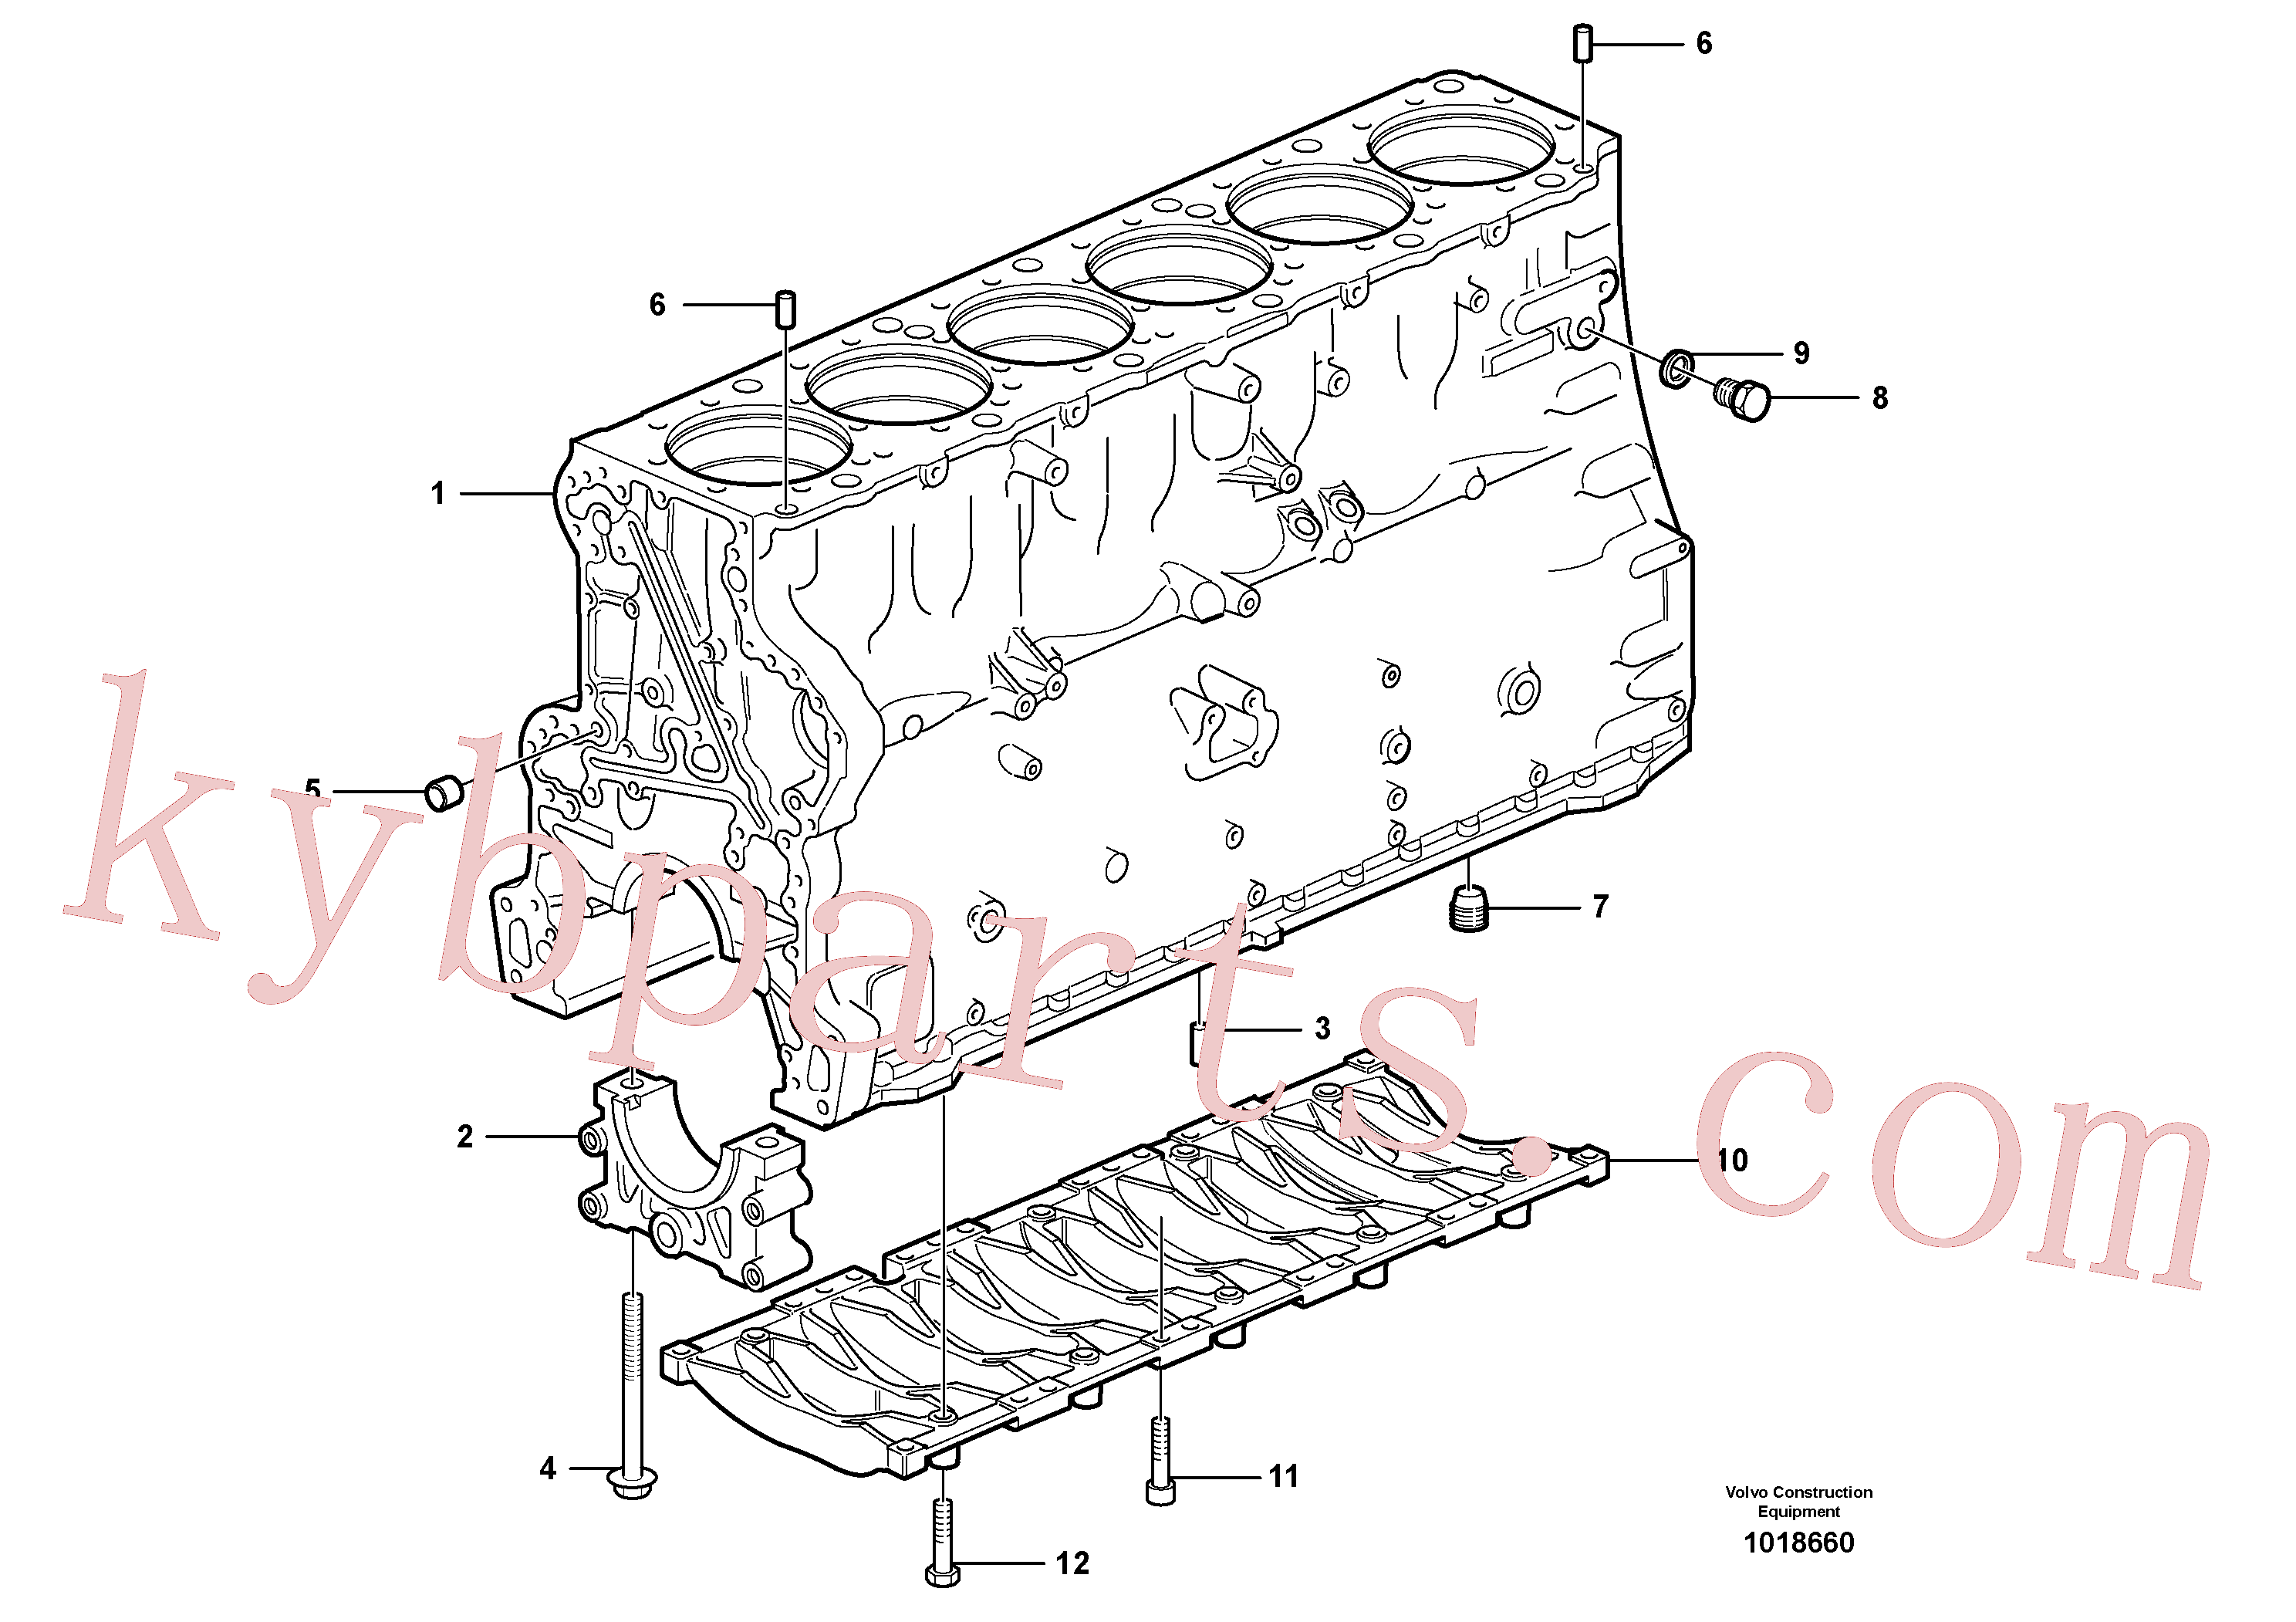 VOE973523 for Volvo Cylinder block(1018660 assembly)